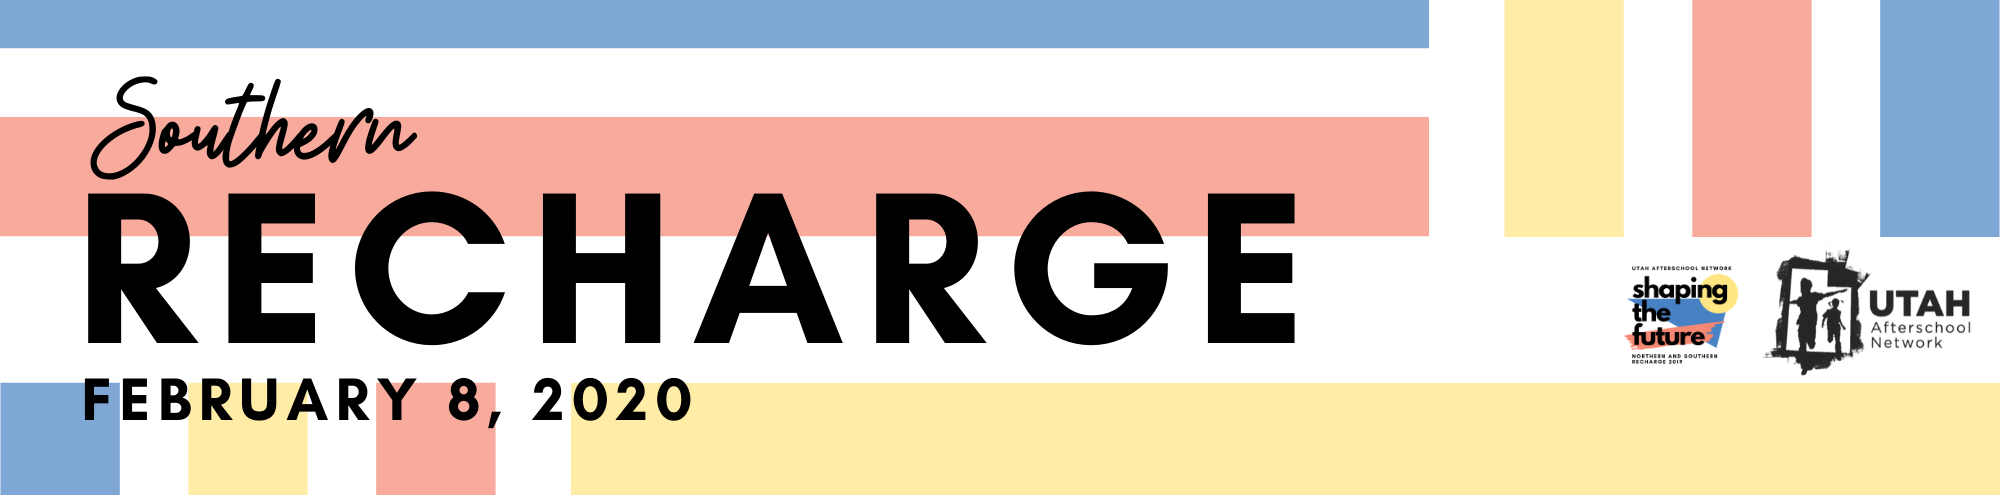 Recharge_Email_Banner_3.png